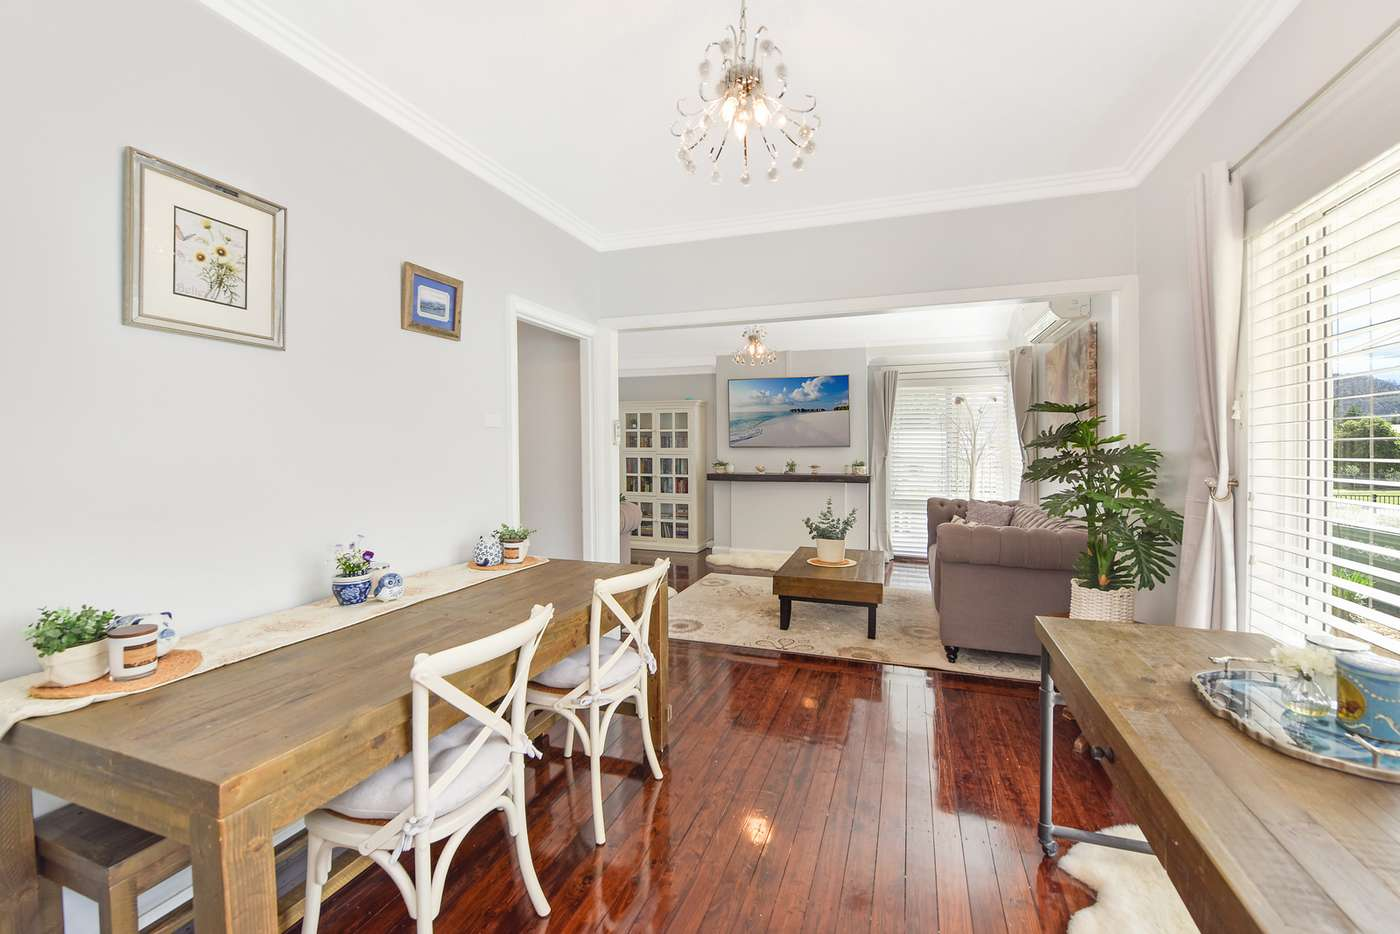 Main view of Homely house listing, 4 Amiens Street, Littleton NSW 2790